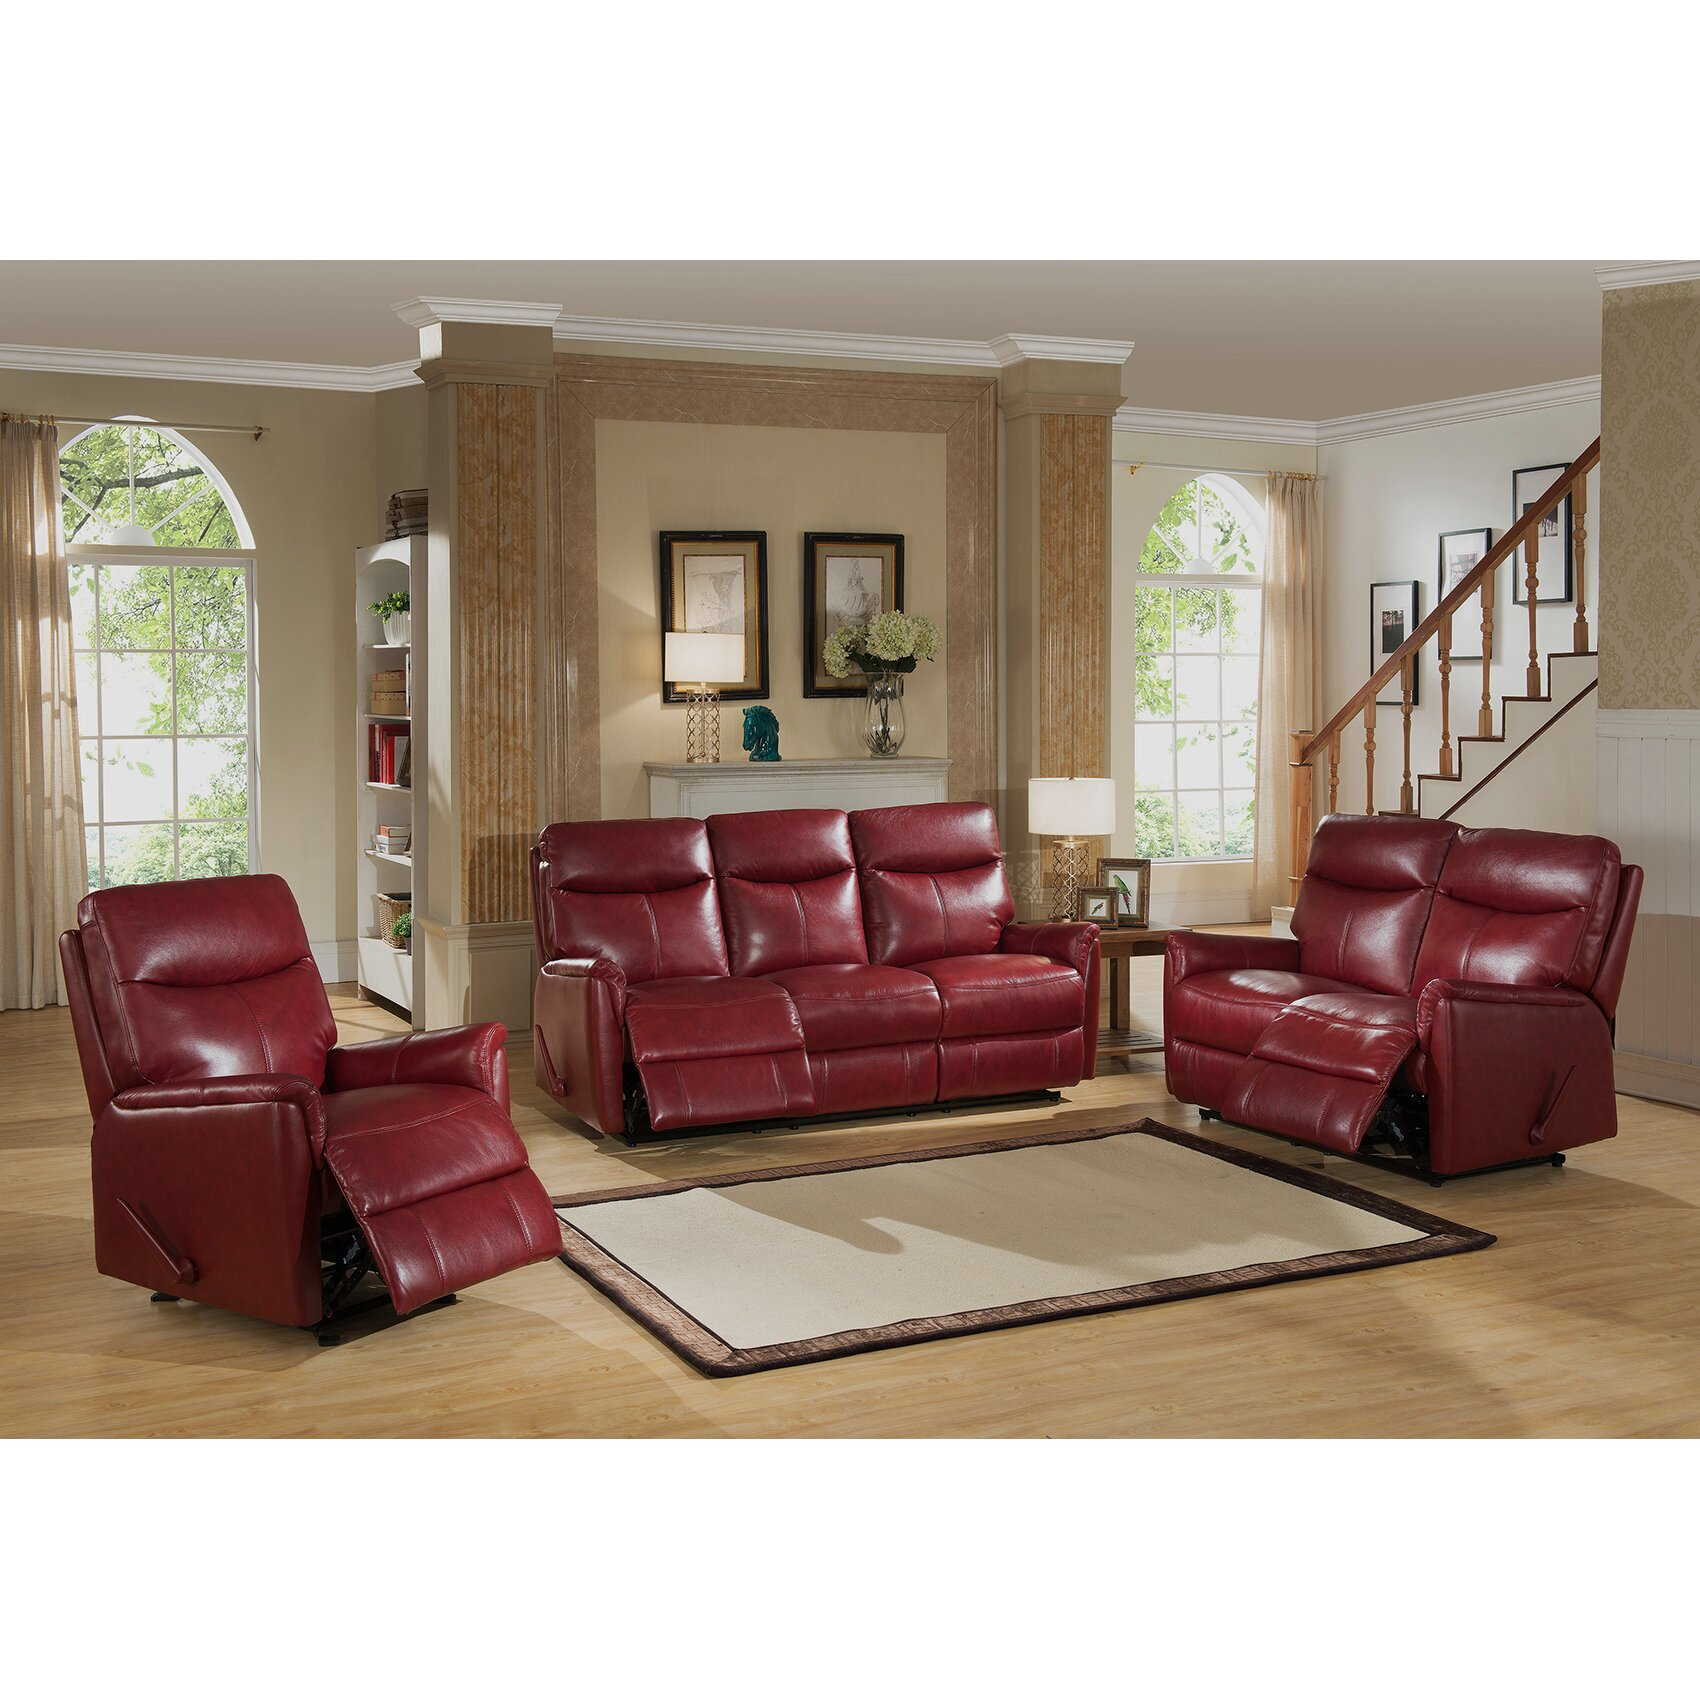 3 Piece Living Room Set Of Amax Napa 3 Piece Leather Lay Flat Reclining Living Room